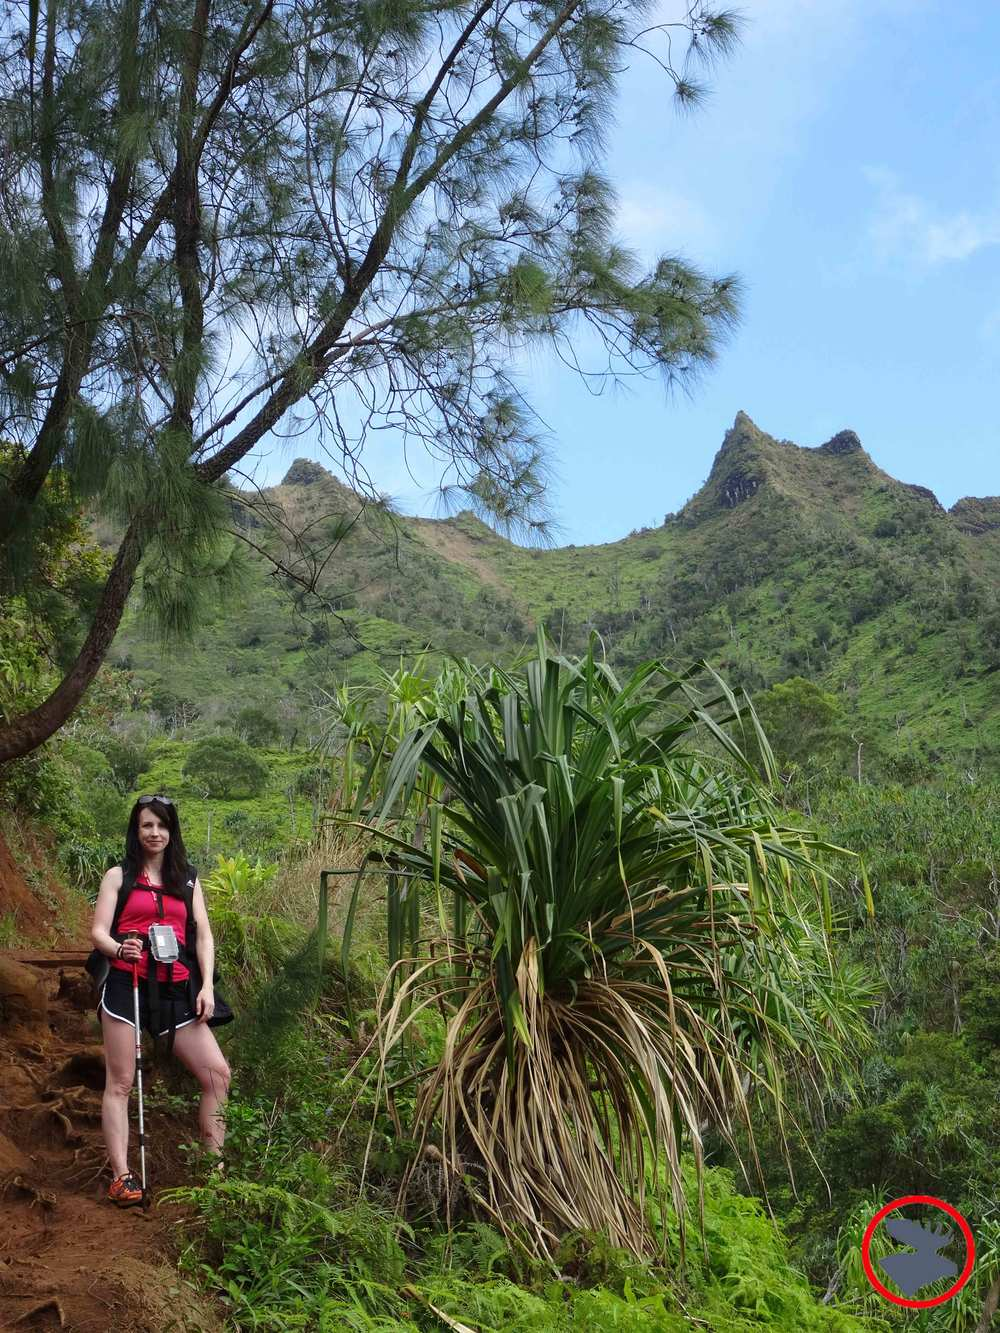 Hard-on-Kalalau-Trail-on-Napali-Coast.jpg